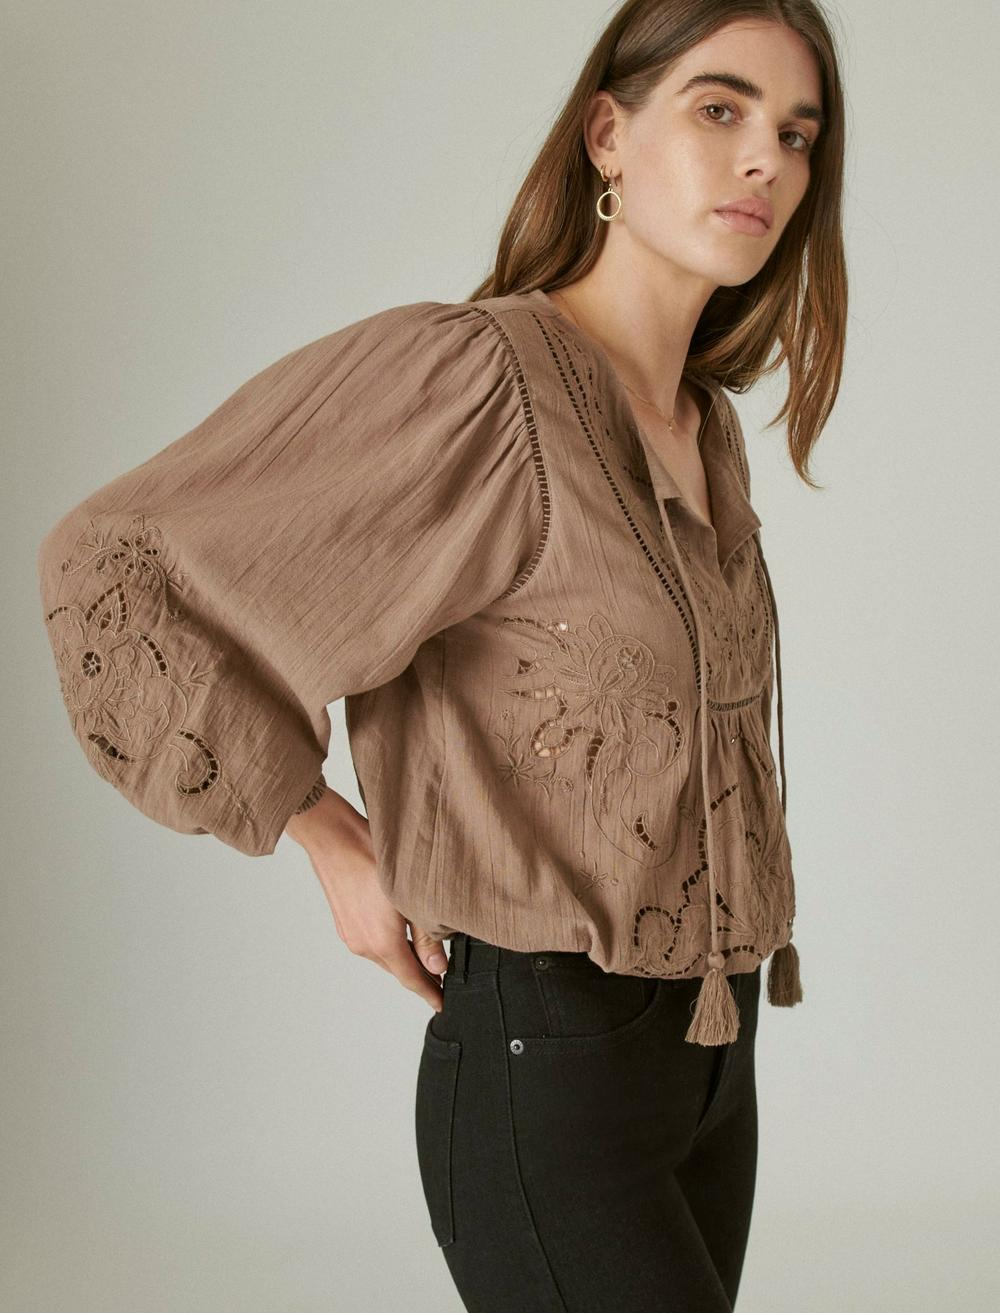 EMBROIDERED PEASANT BLOUSE, image 3